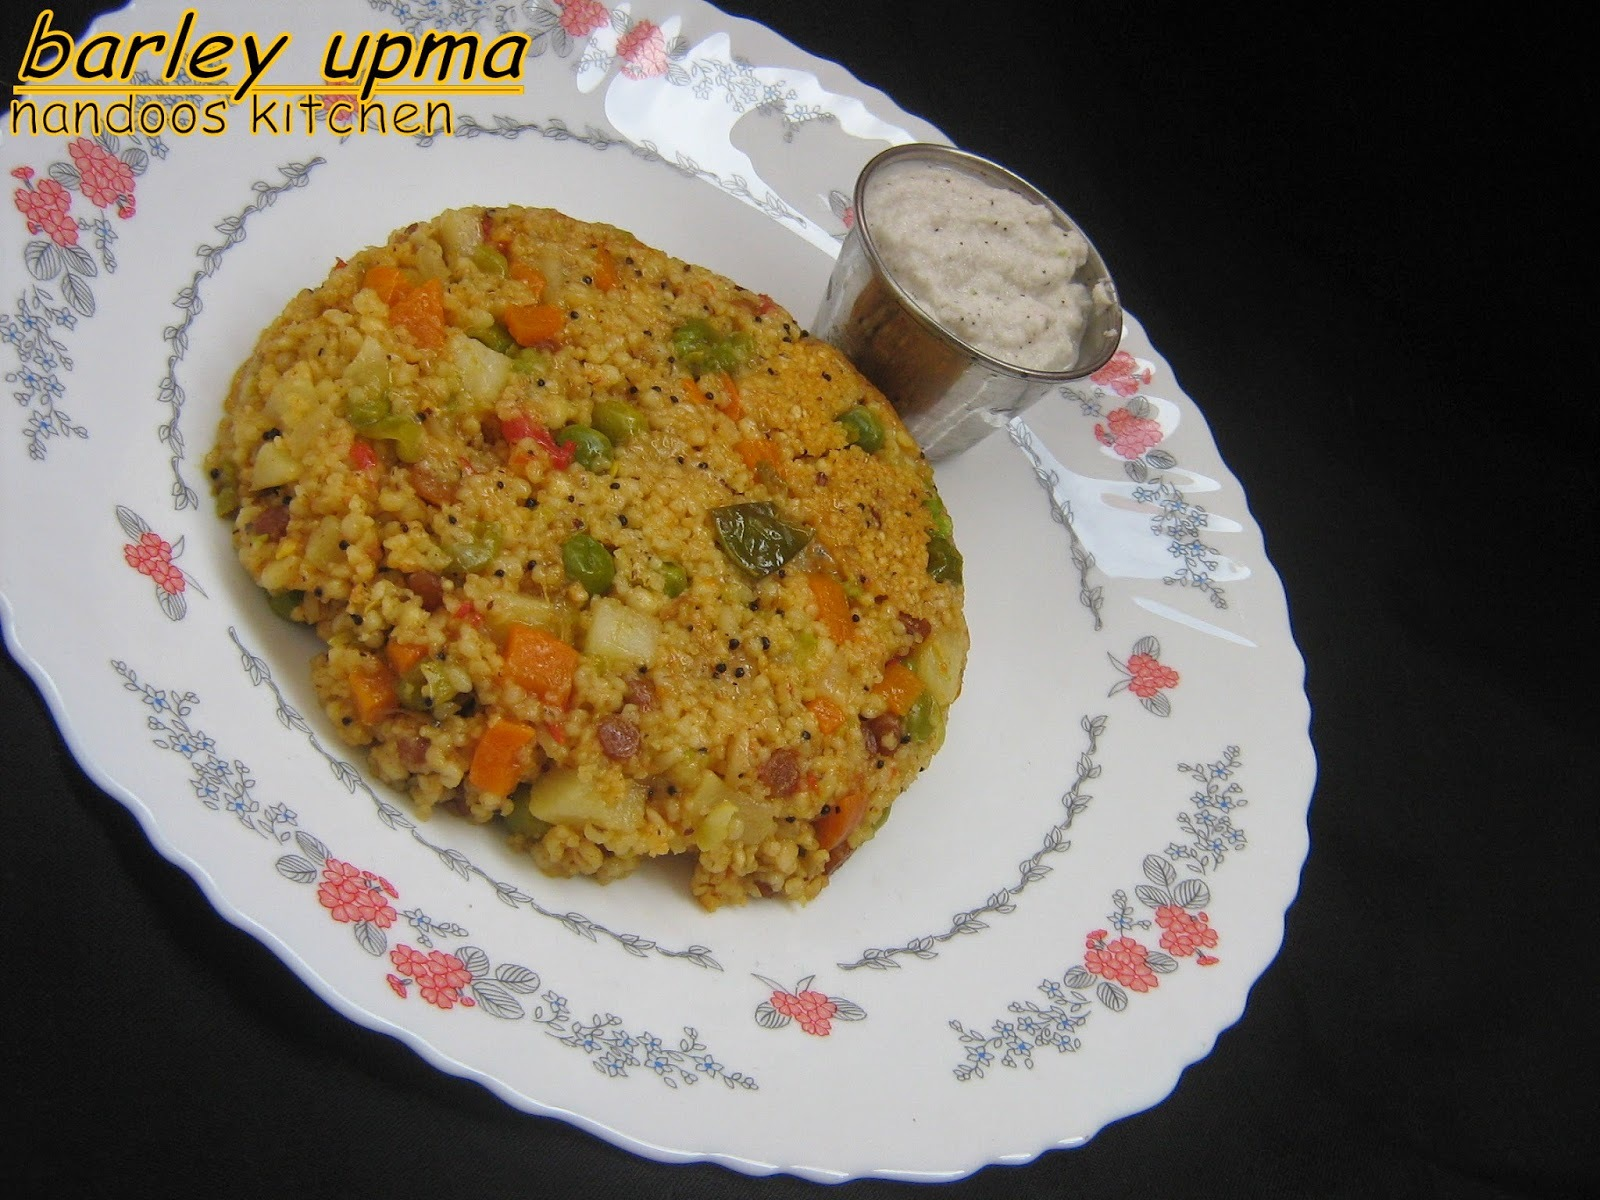 Barley upma / barley recipes / cooking with millets